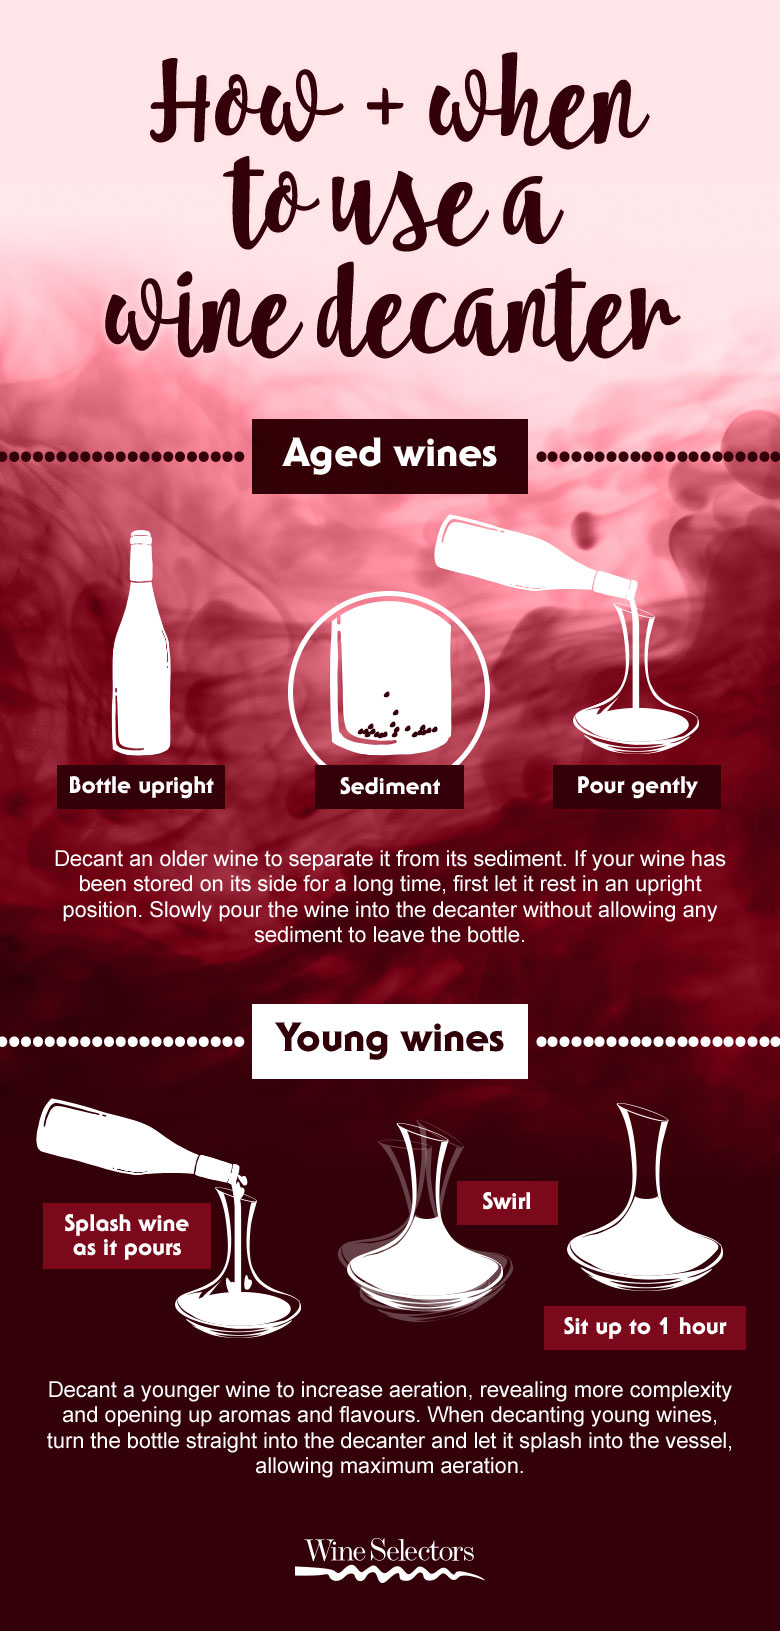 How and when to decant wine infographic